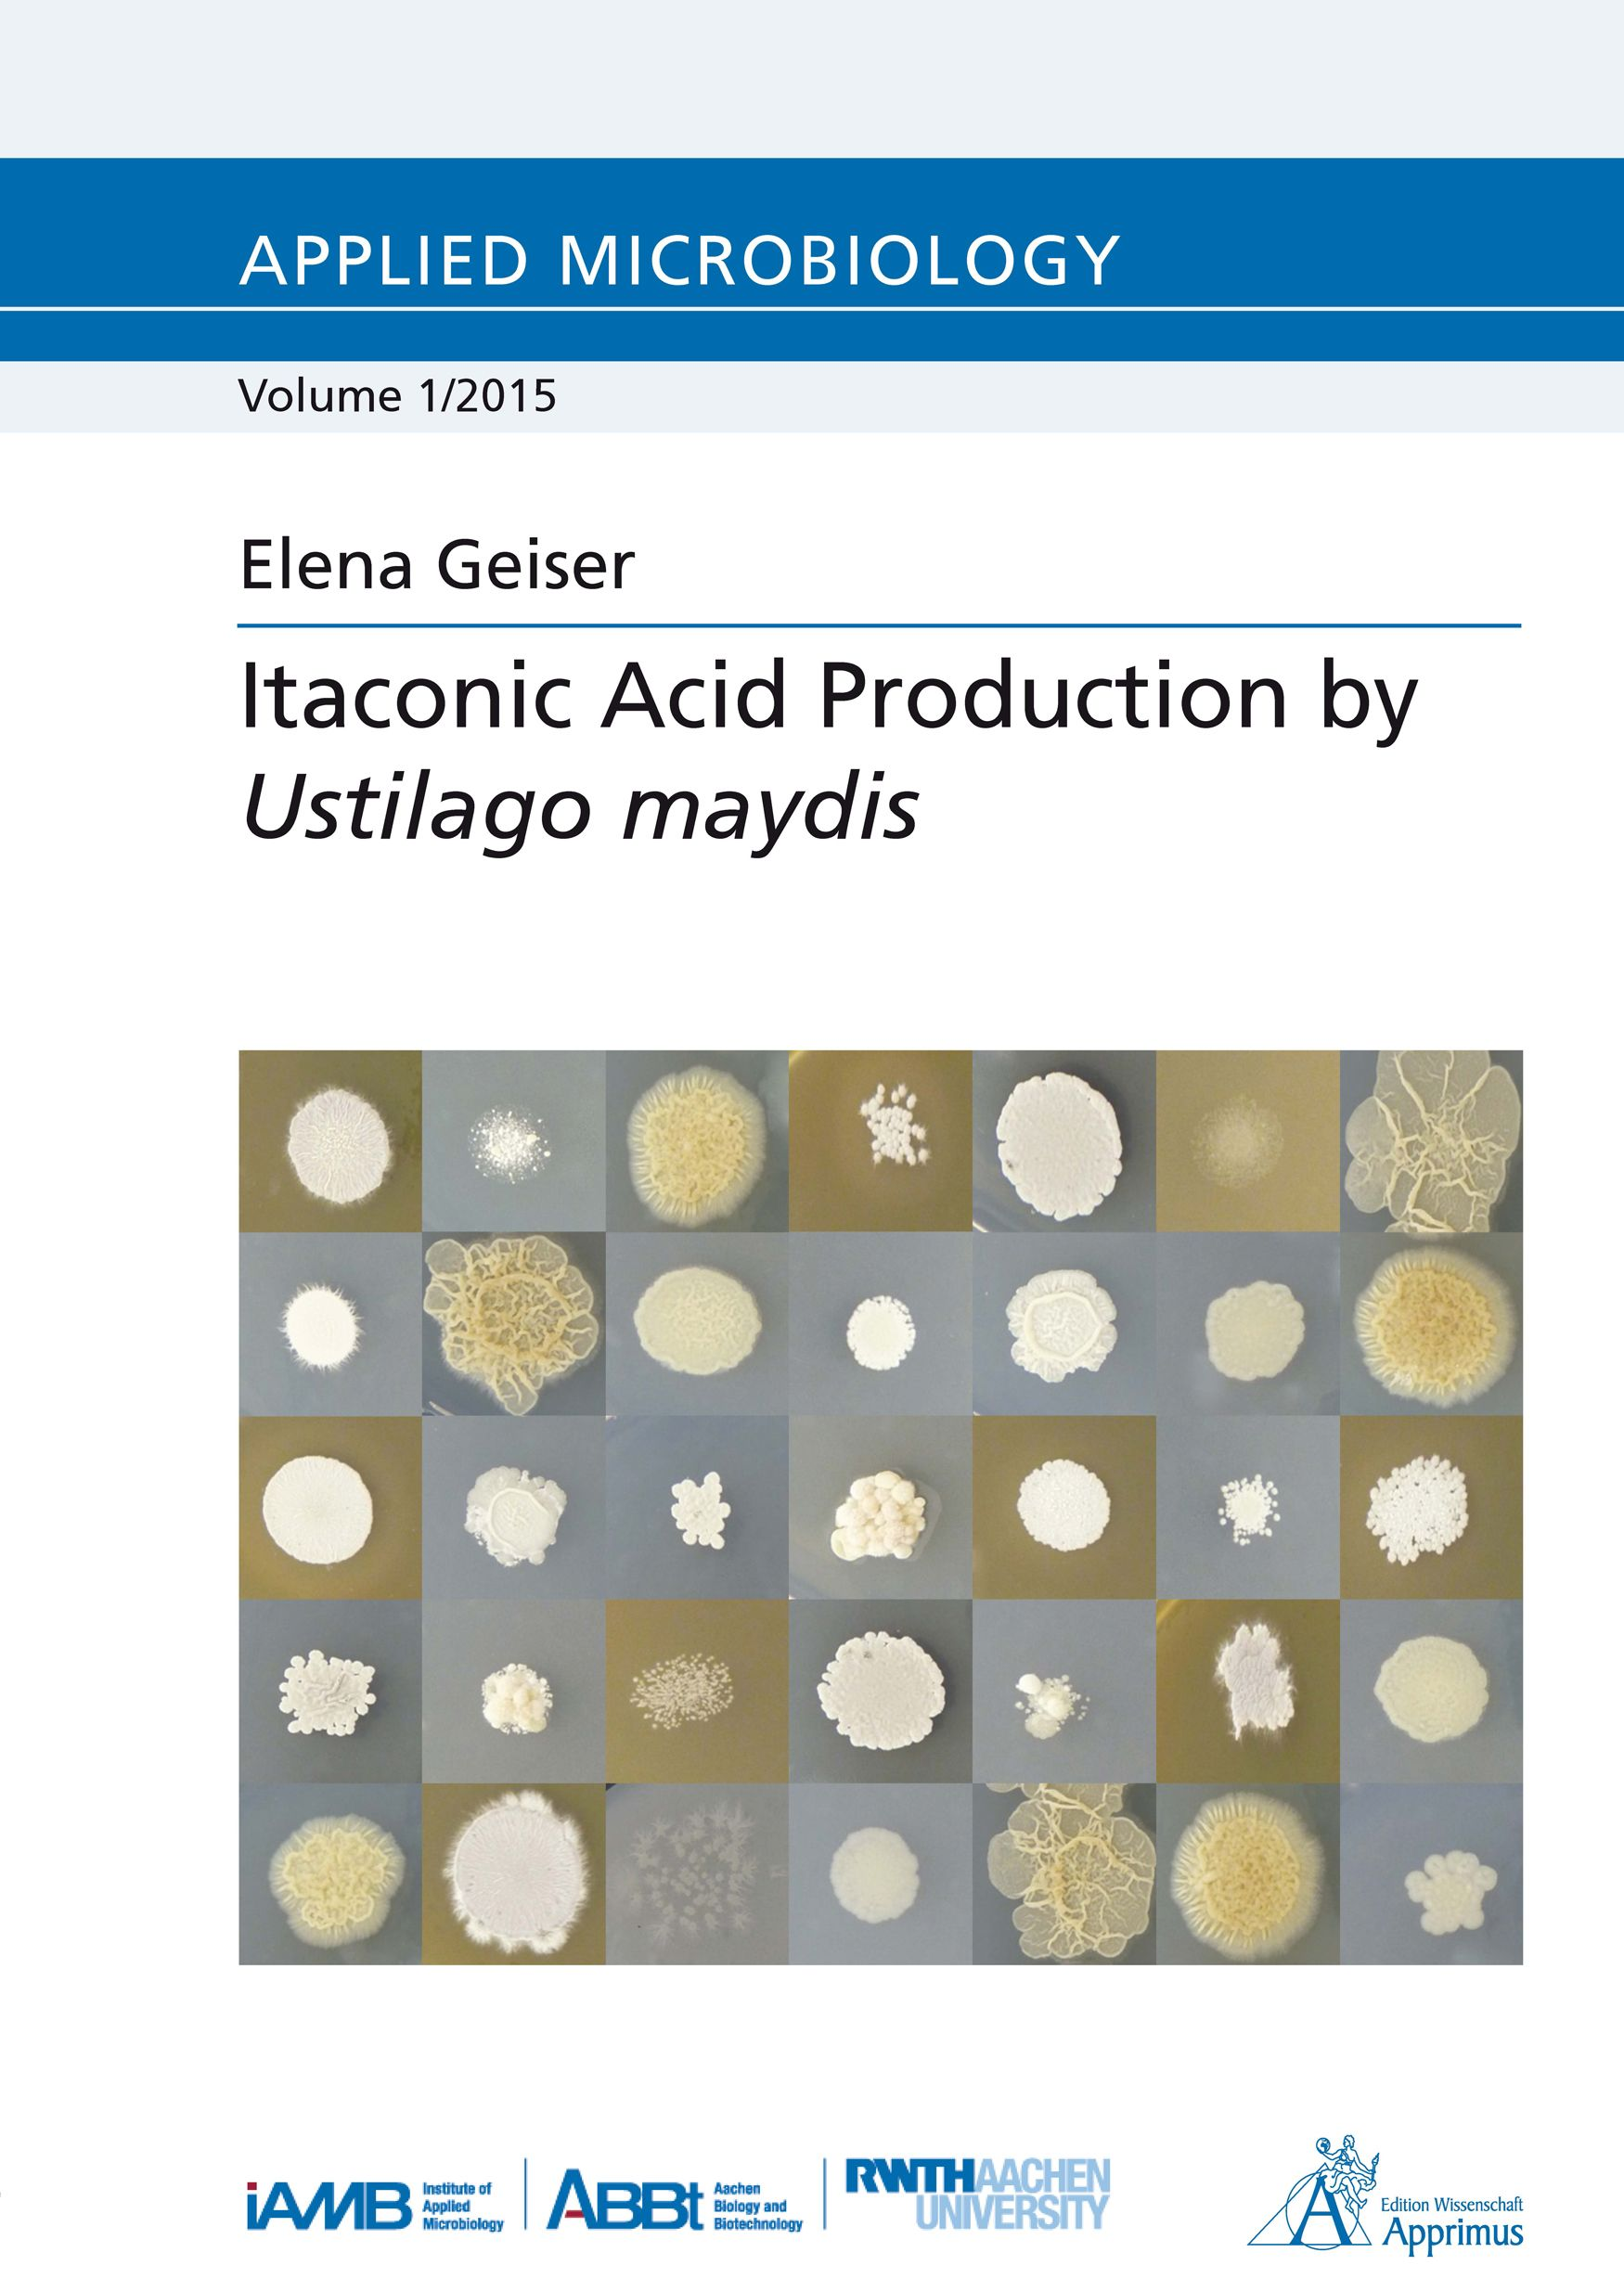 Itaconic Acid Production by Ustilago maydis